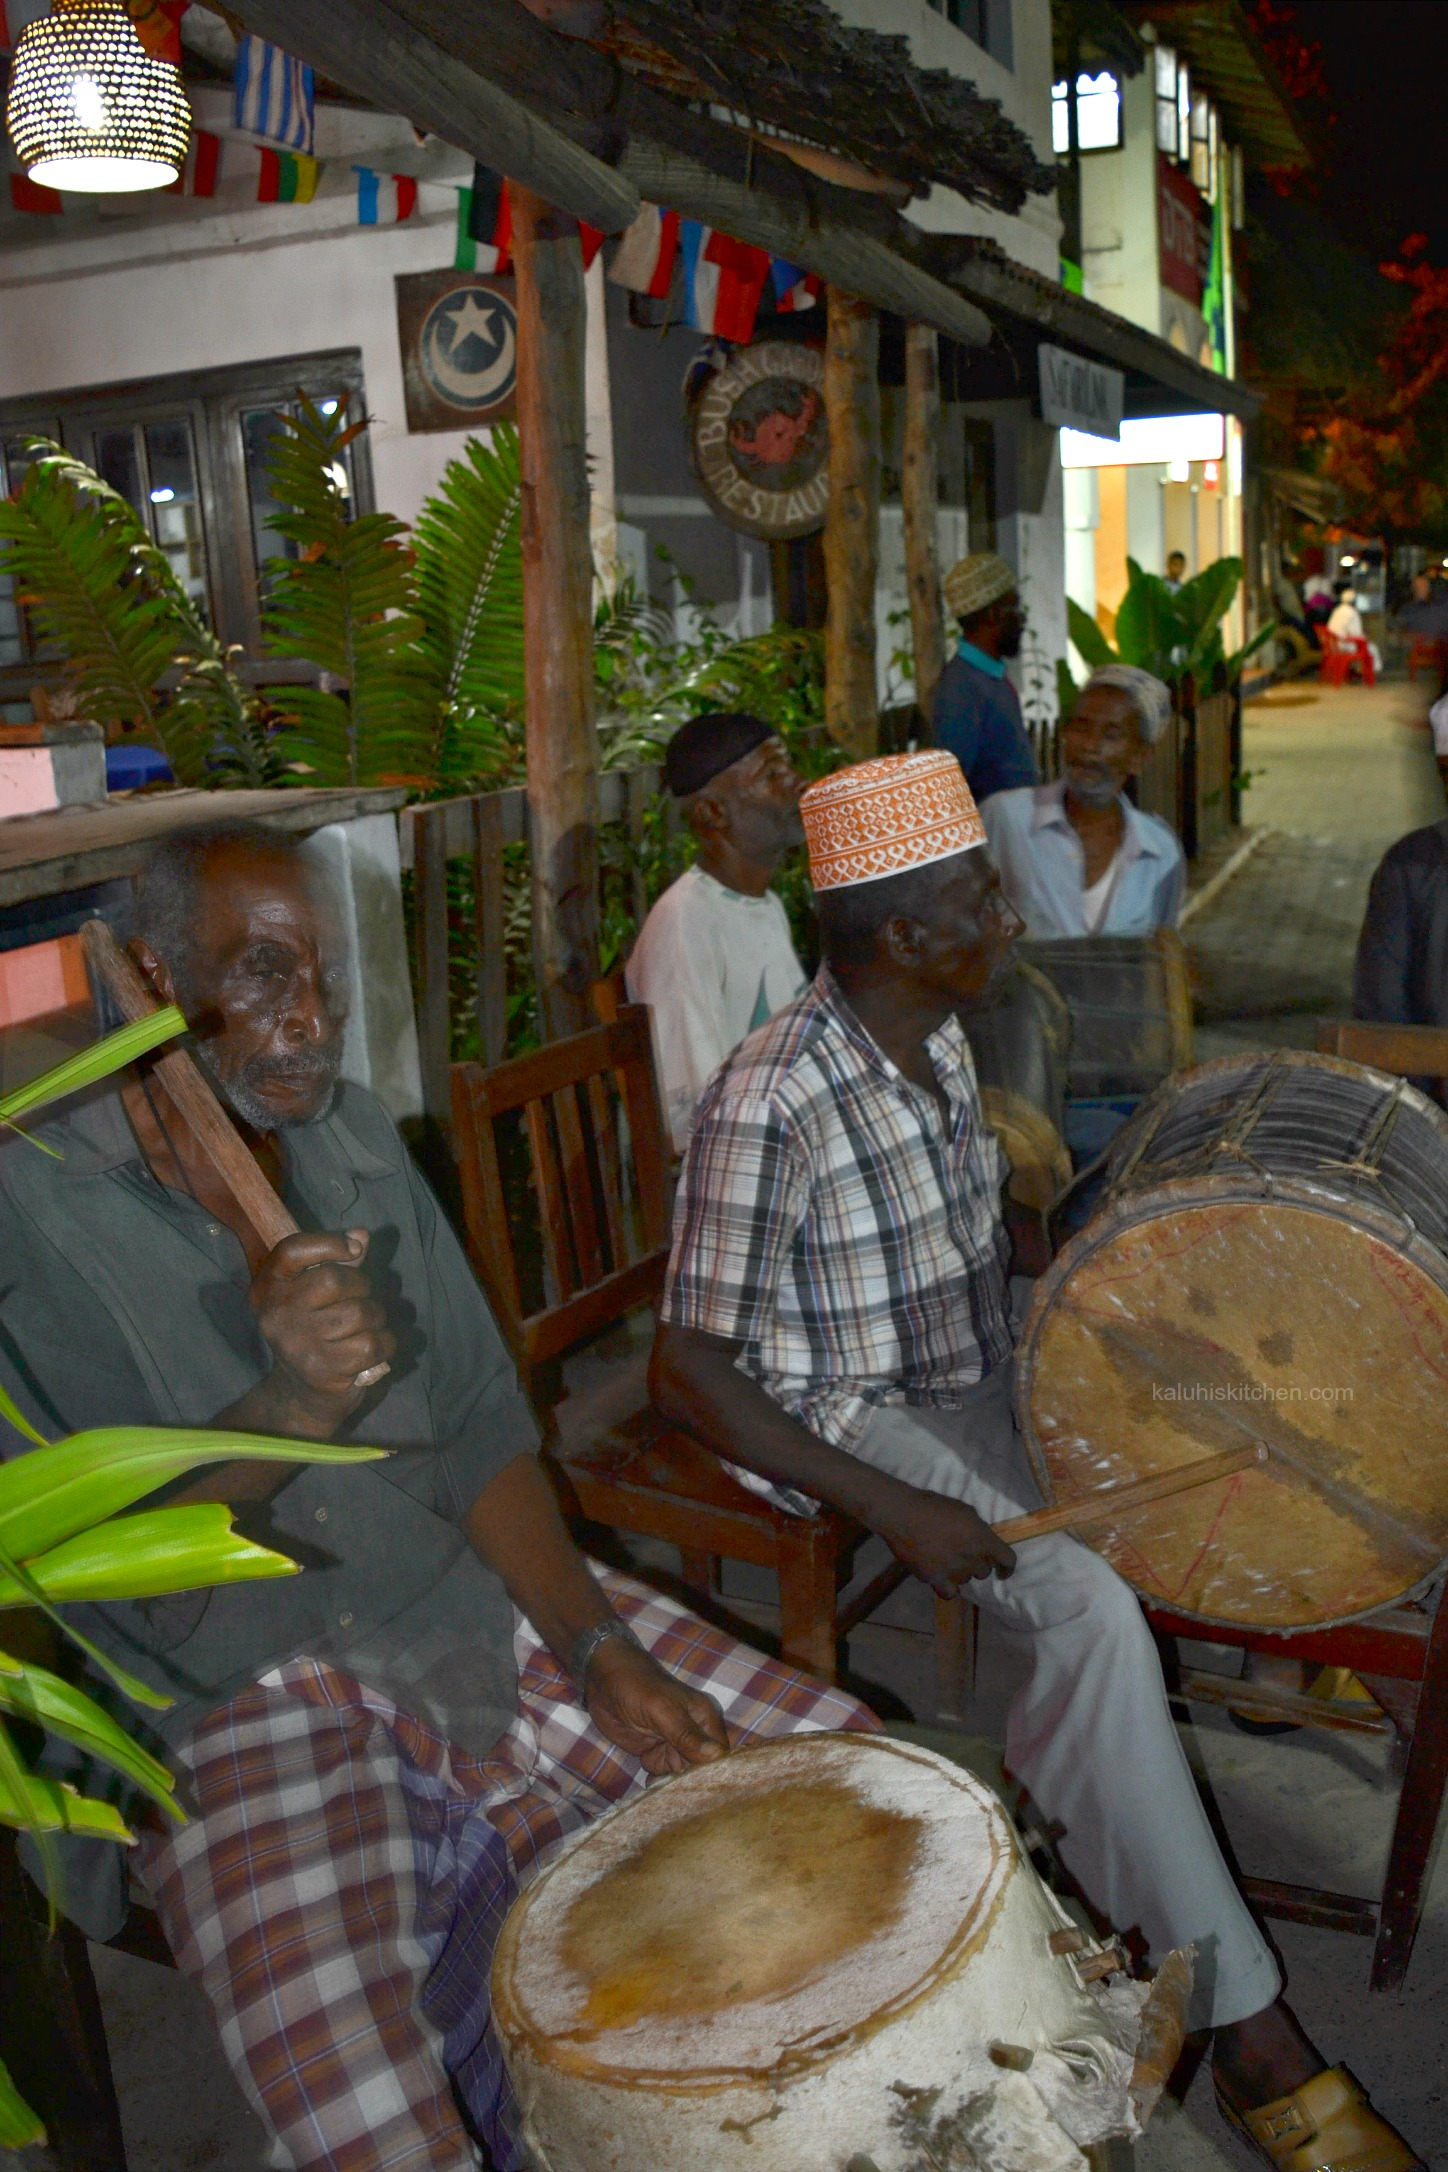 locals playing music at the lamu sea front for the guests arriving made the food festival mood light up_kaluhiskitchen.com